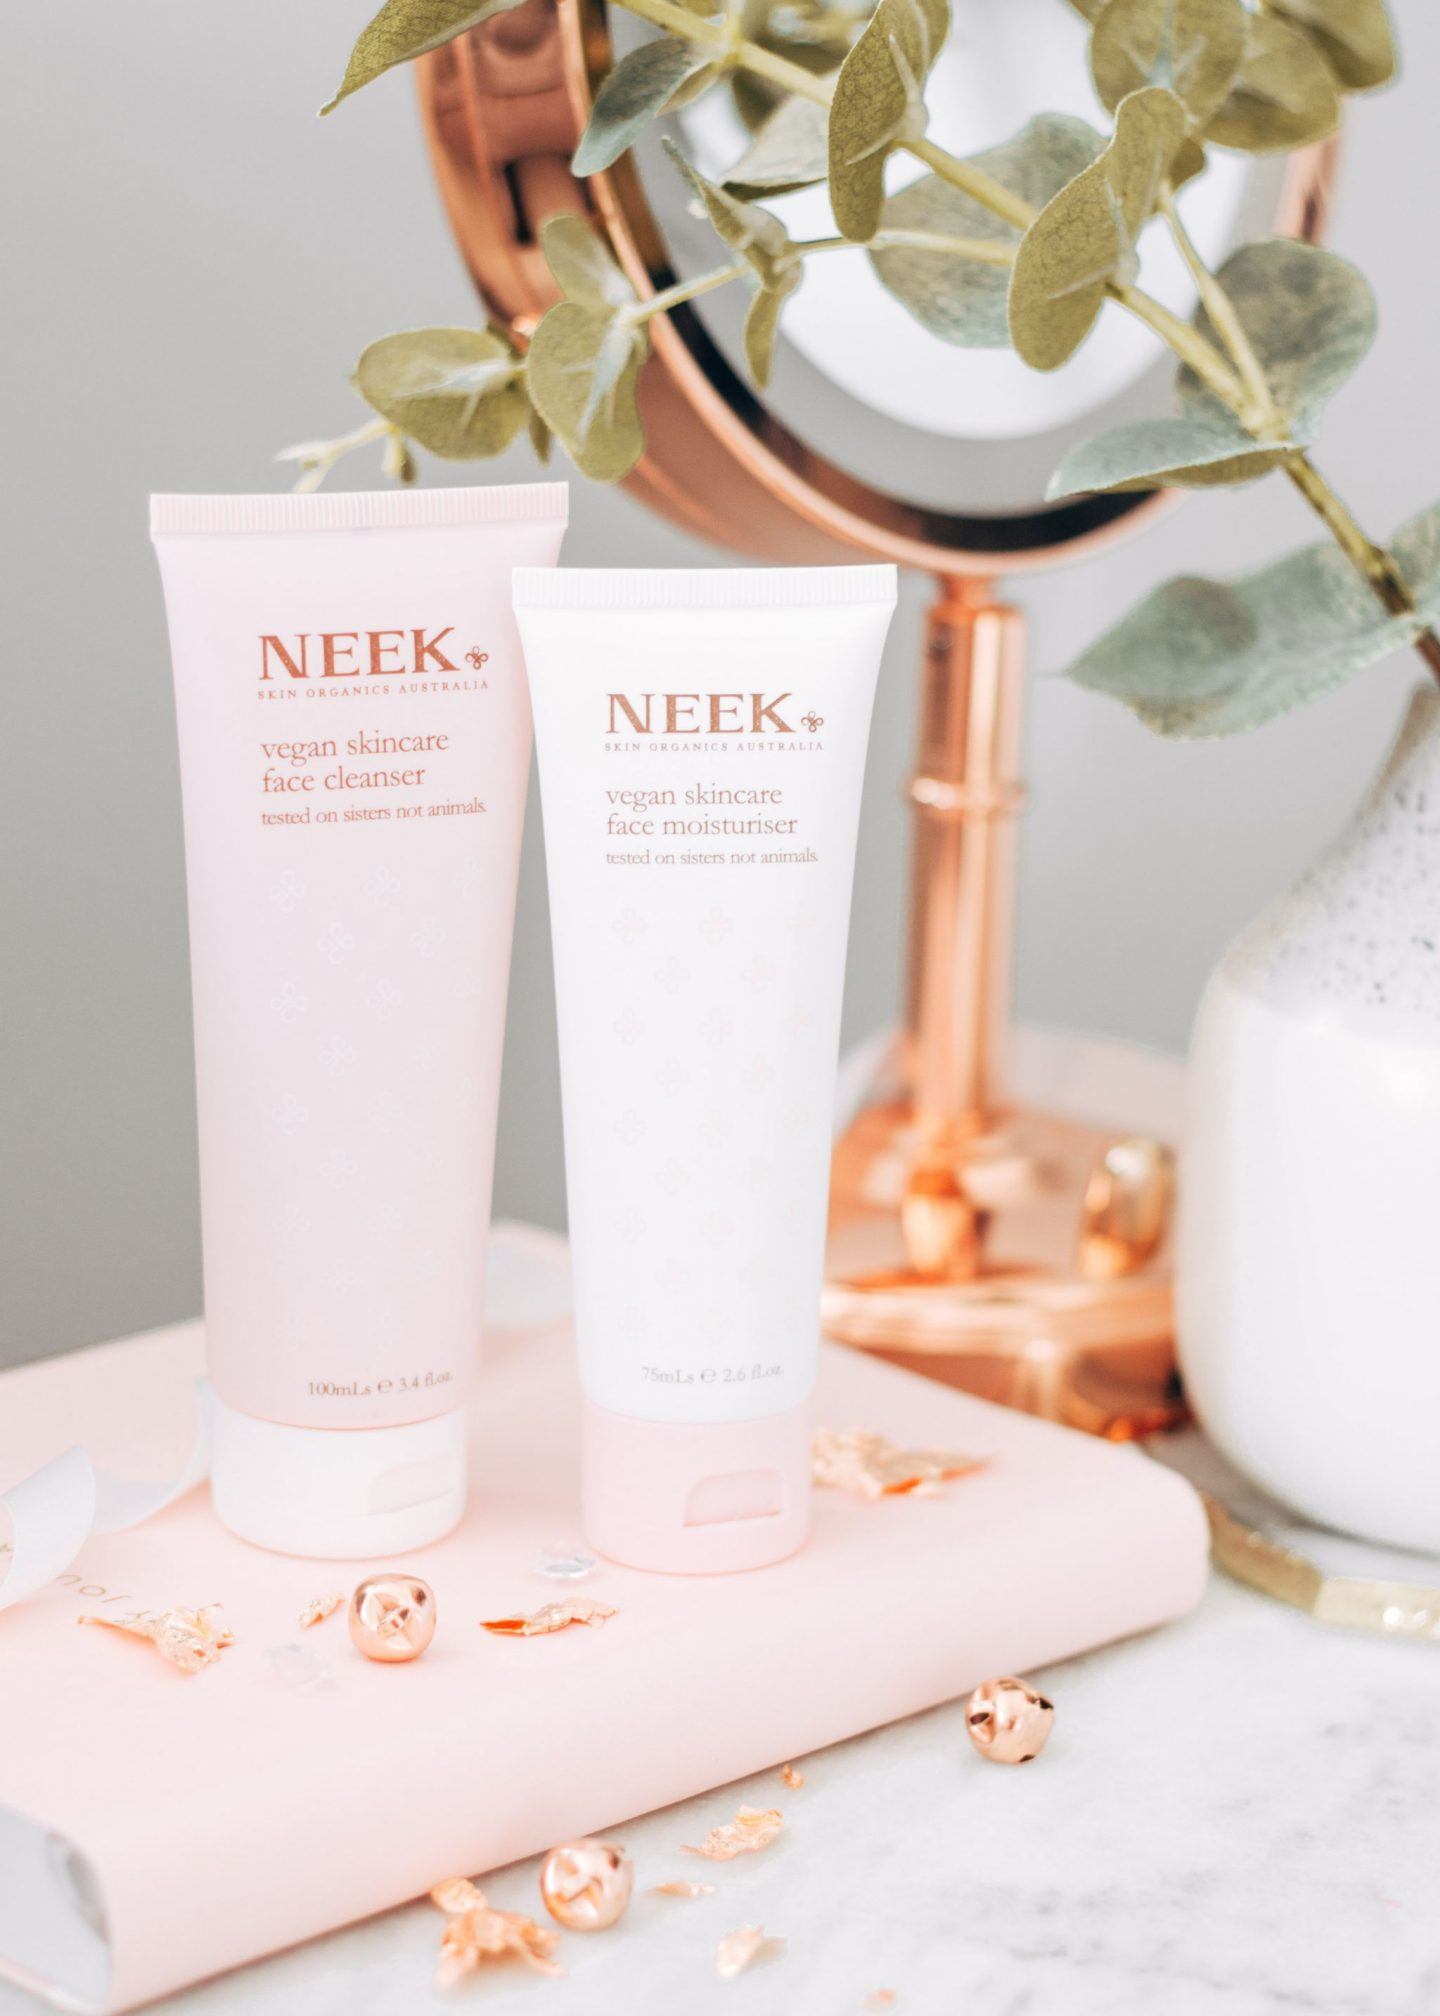 forever september, skincare on trial: neek, skincare, lifestyle, beauty, cleanser, moisturiser, skincare duo, natural, vegan skincare, cruelty free,